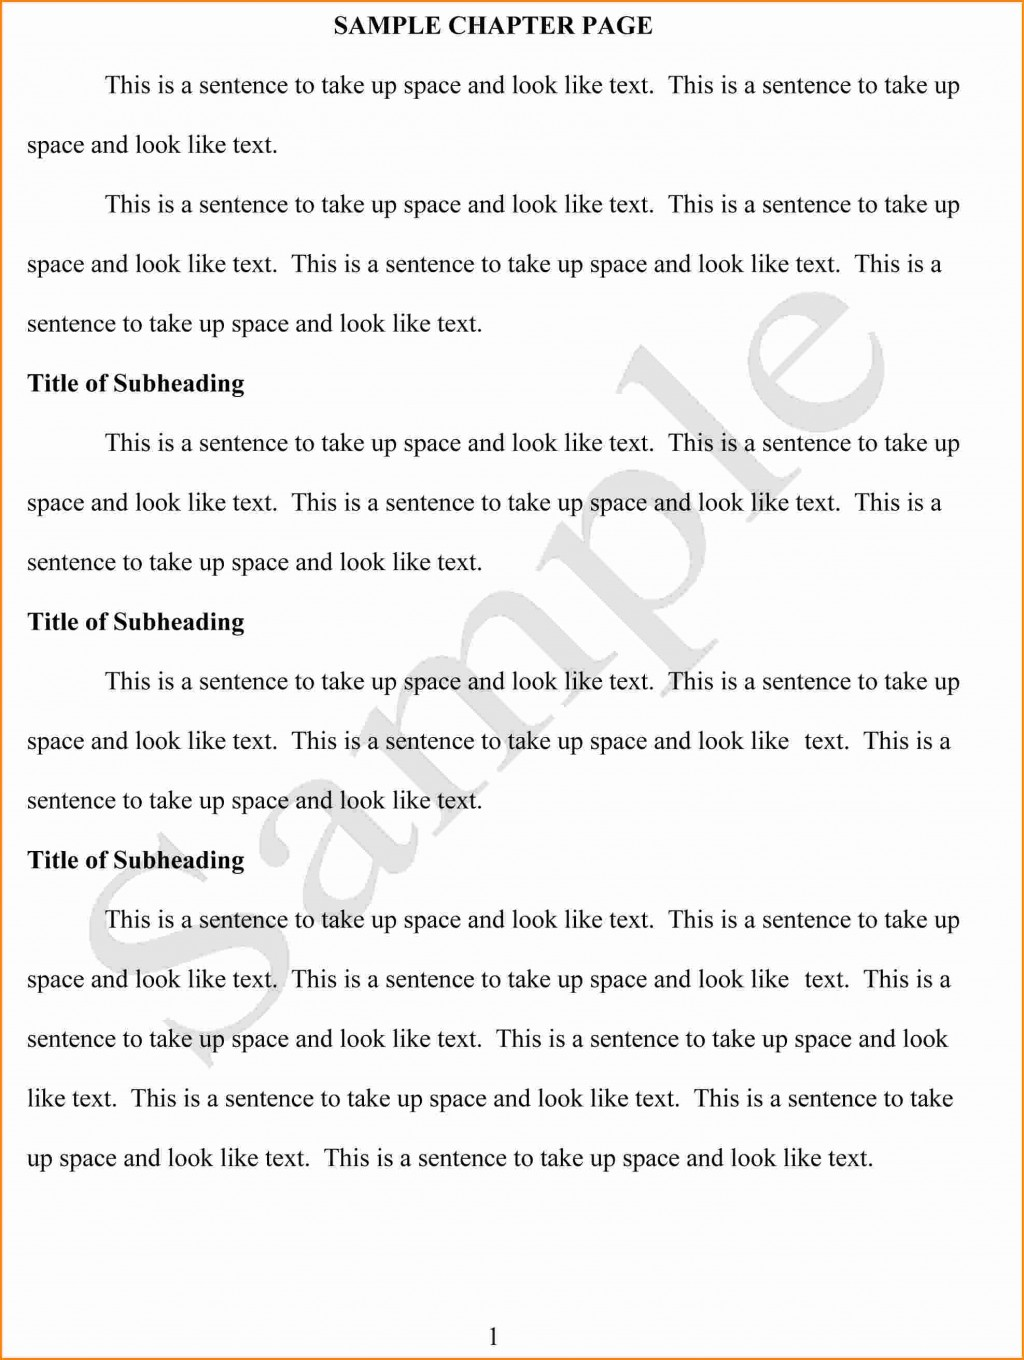 001 Thesis Statement Examples For Essays Essay Example Psychology Impressive Analysis Response Papers About Yourself Large